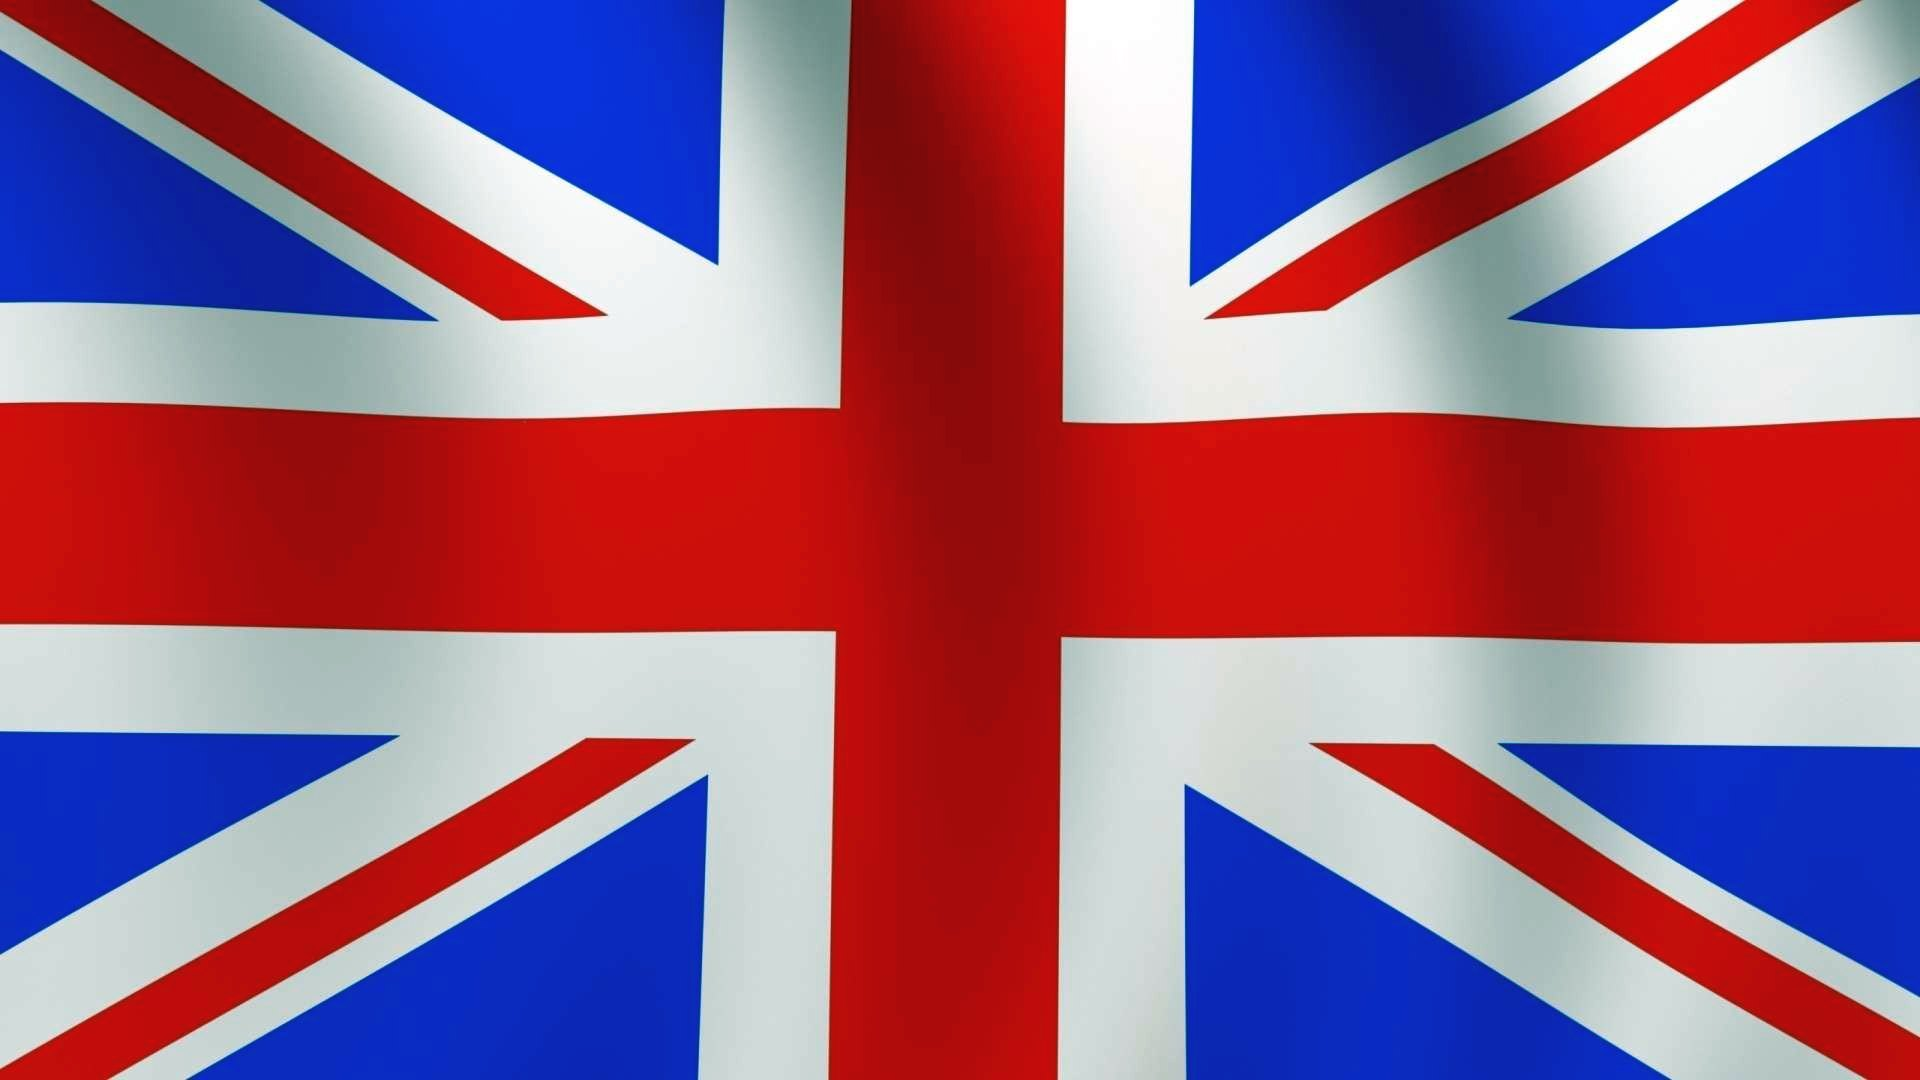 Flag Desktop Background: British Flag Background